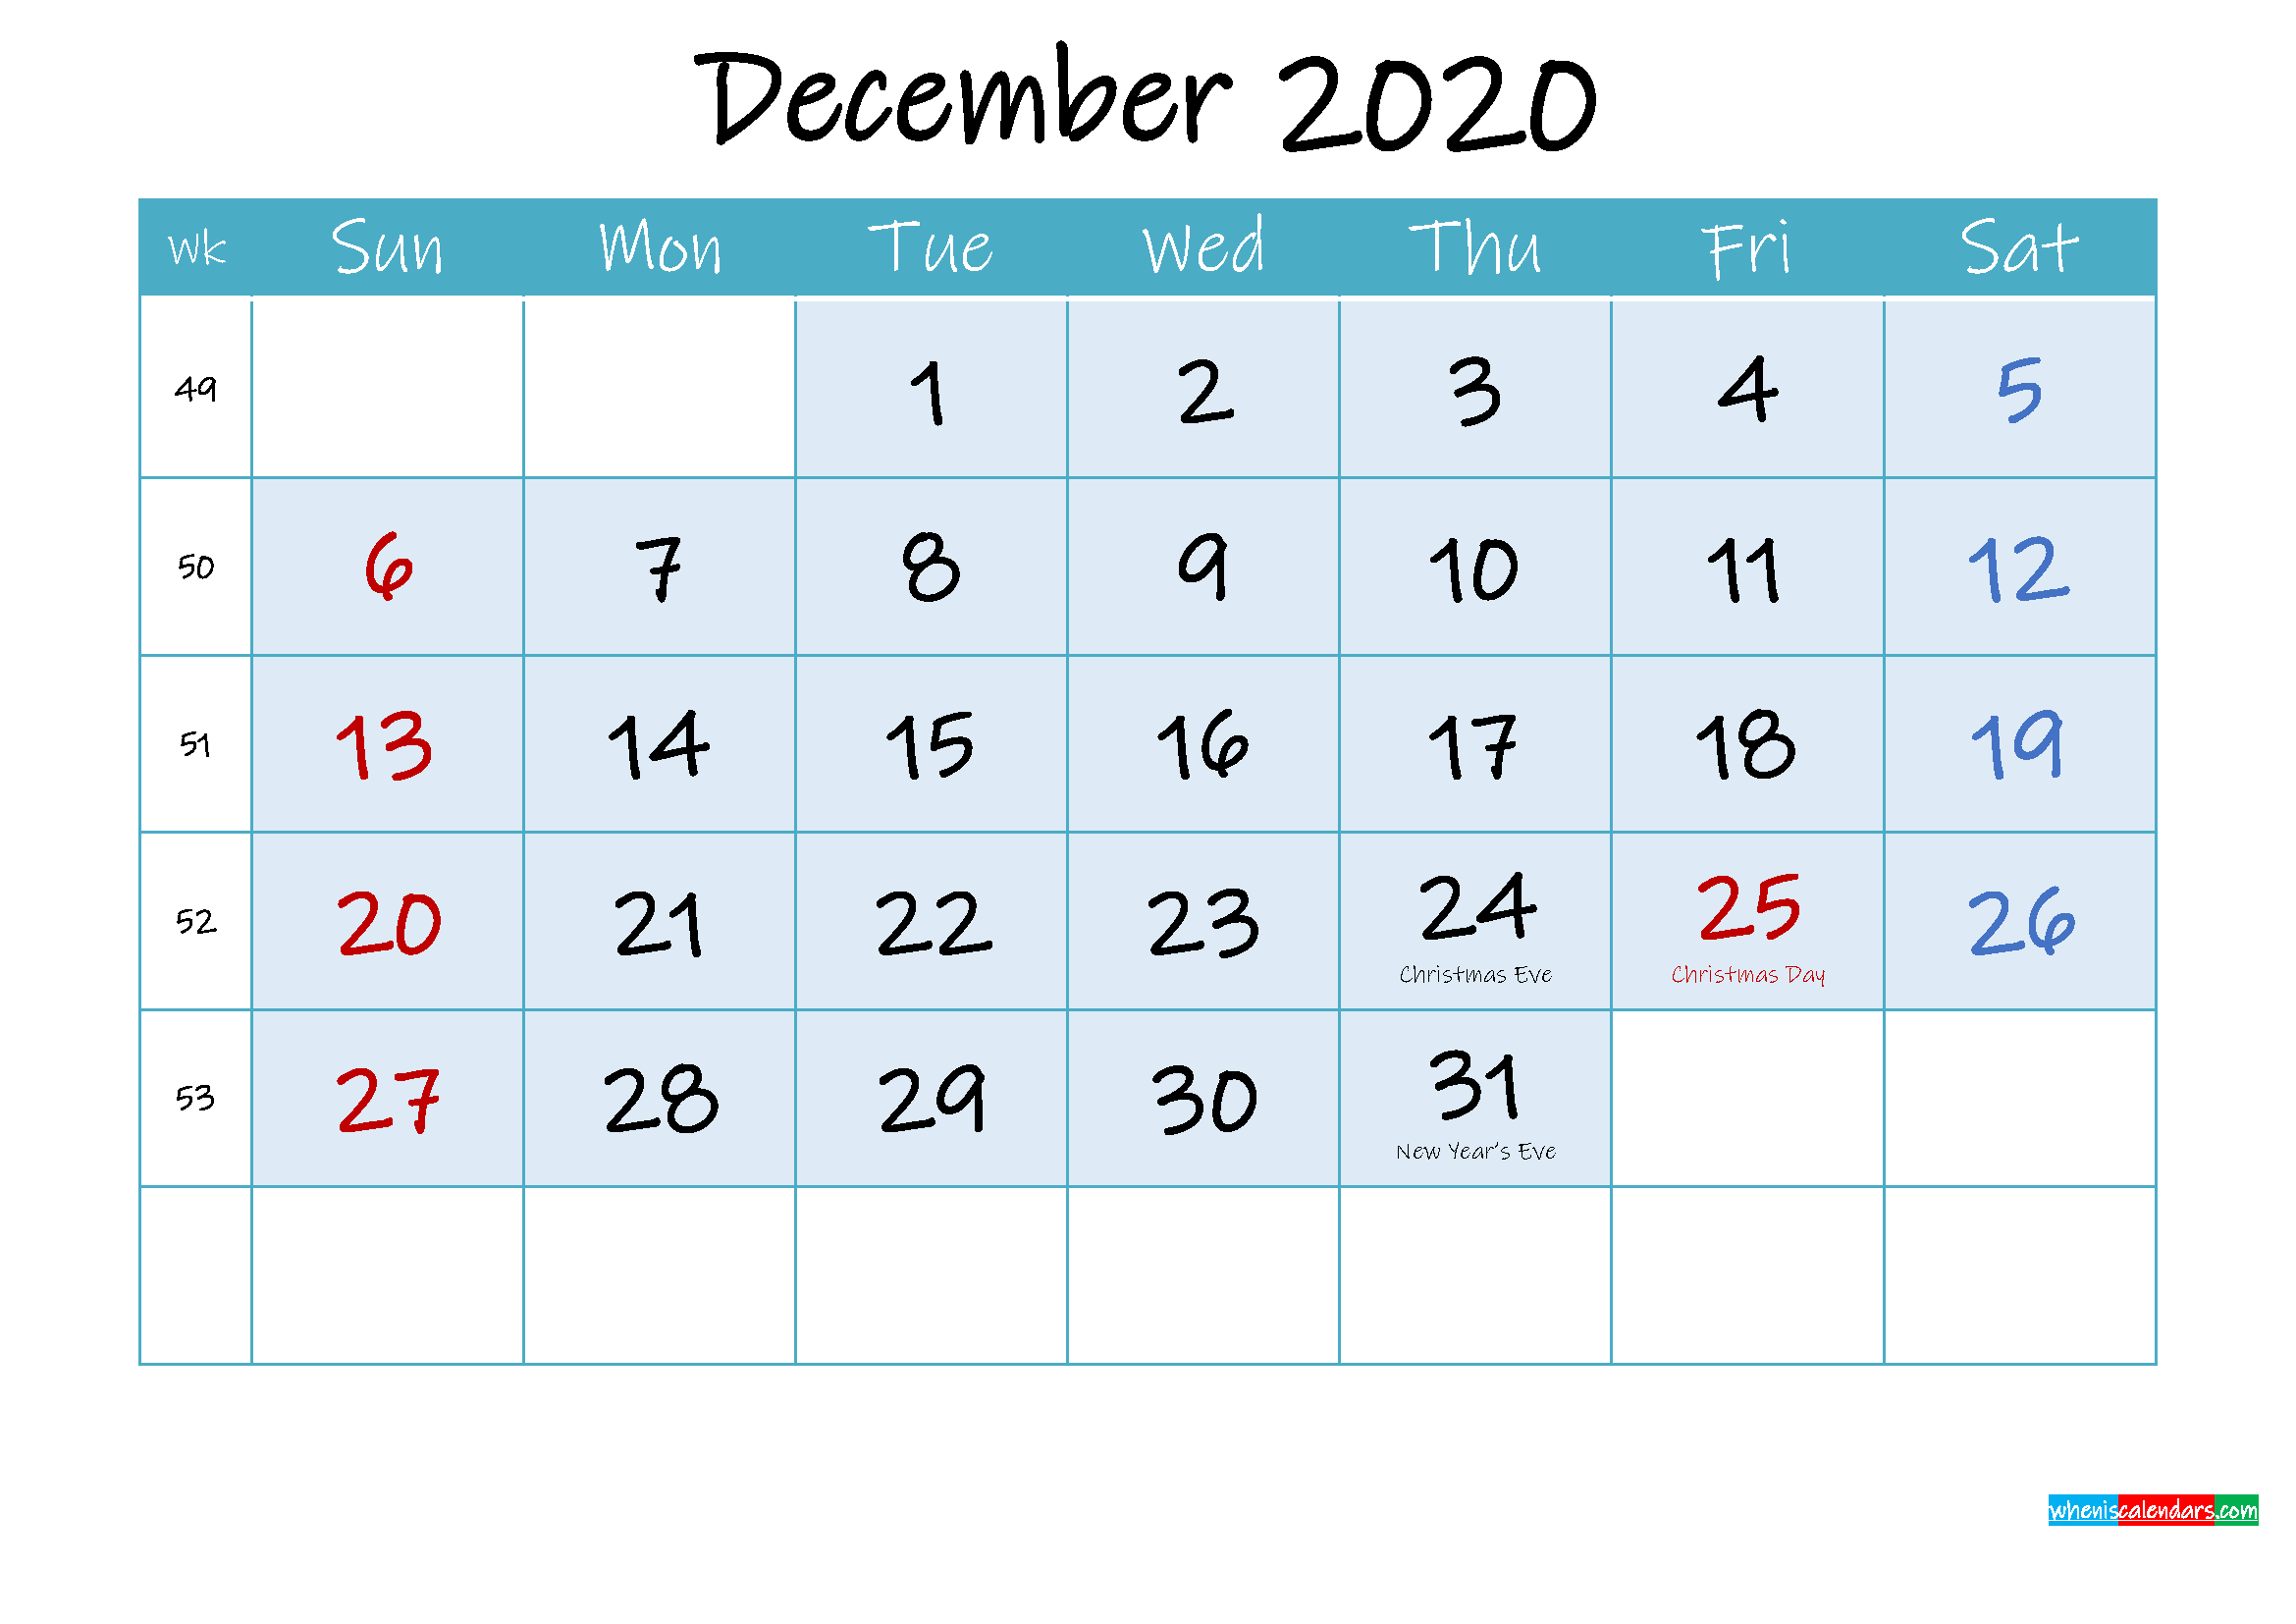 December 2020 Free Printable Calendar with Holidays